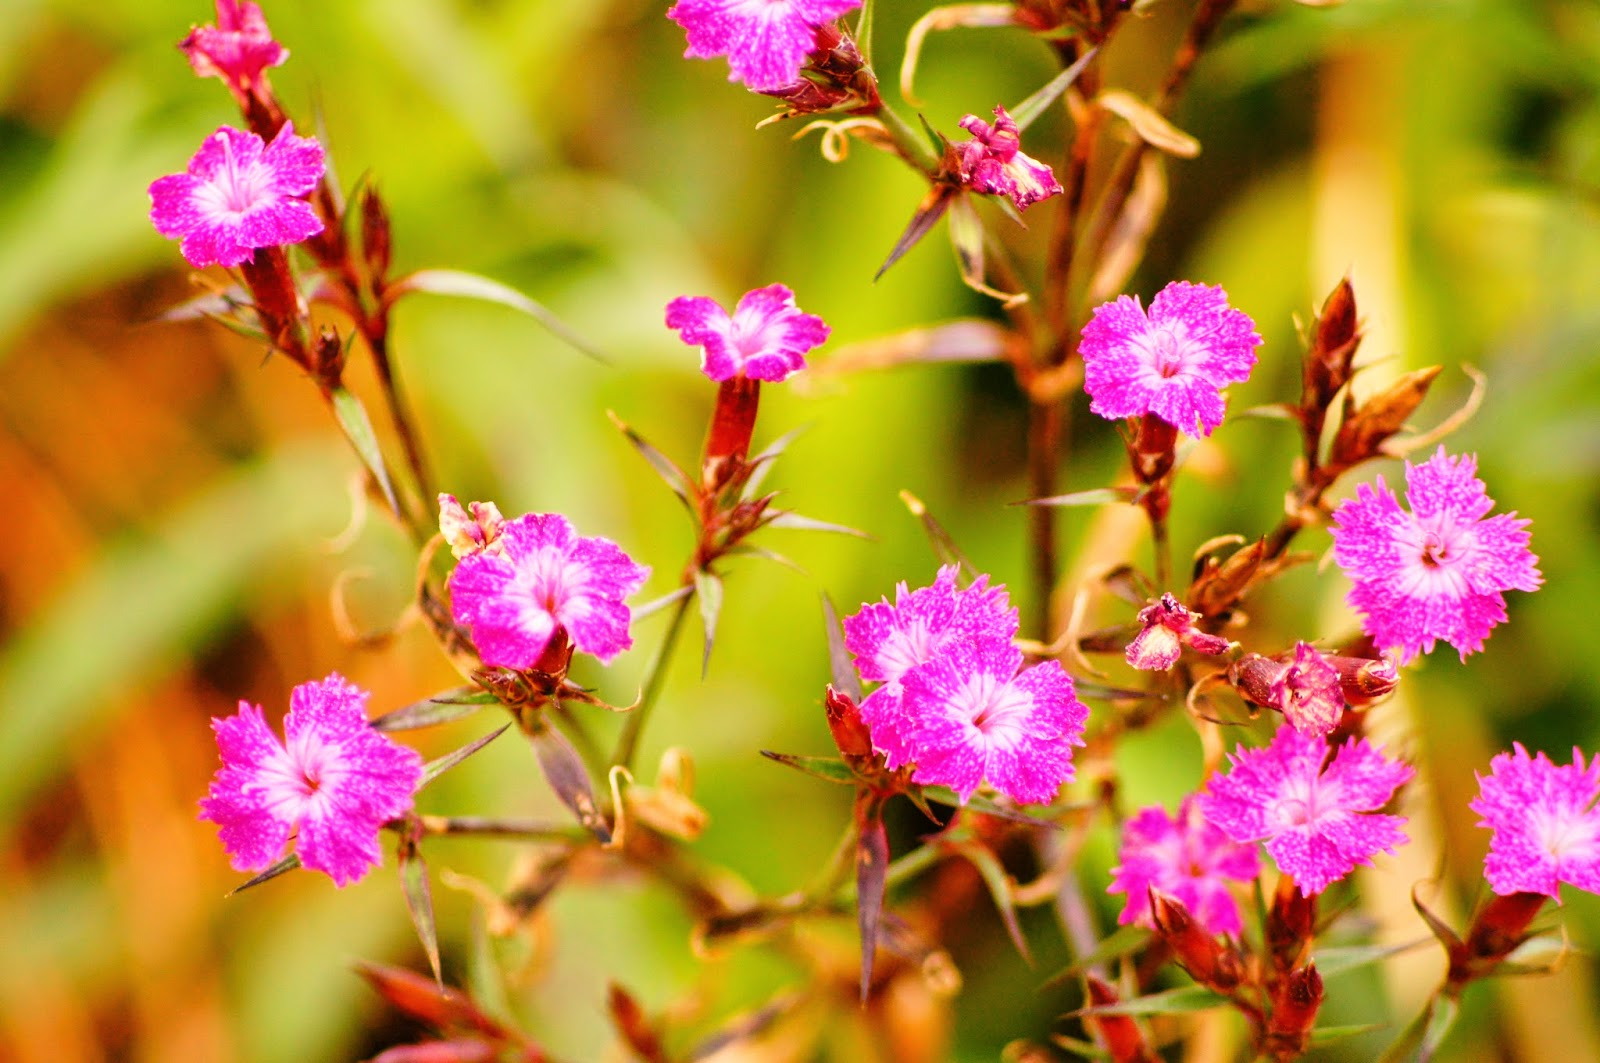 100 flowers royalty free pictures 1 million free picturesf